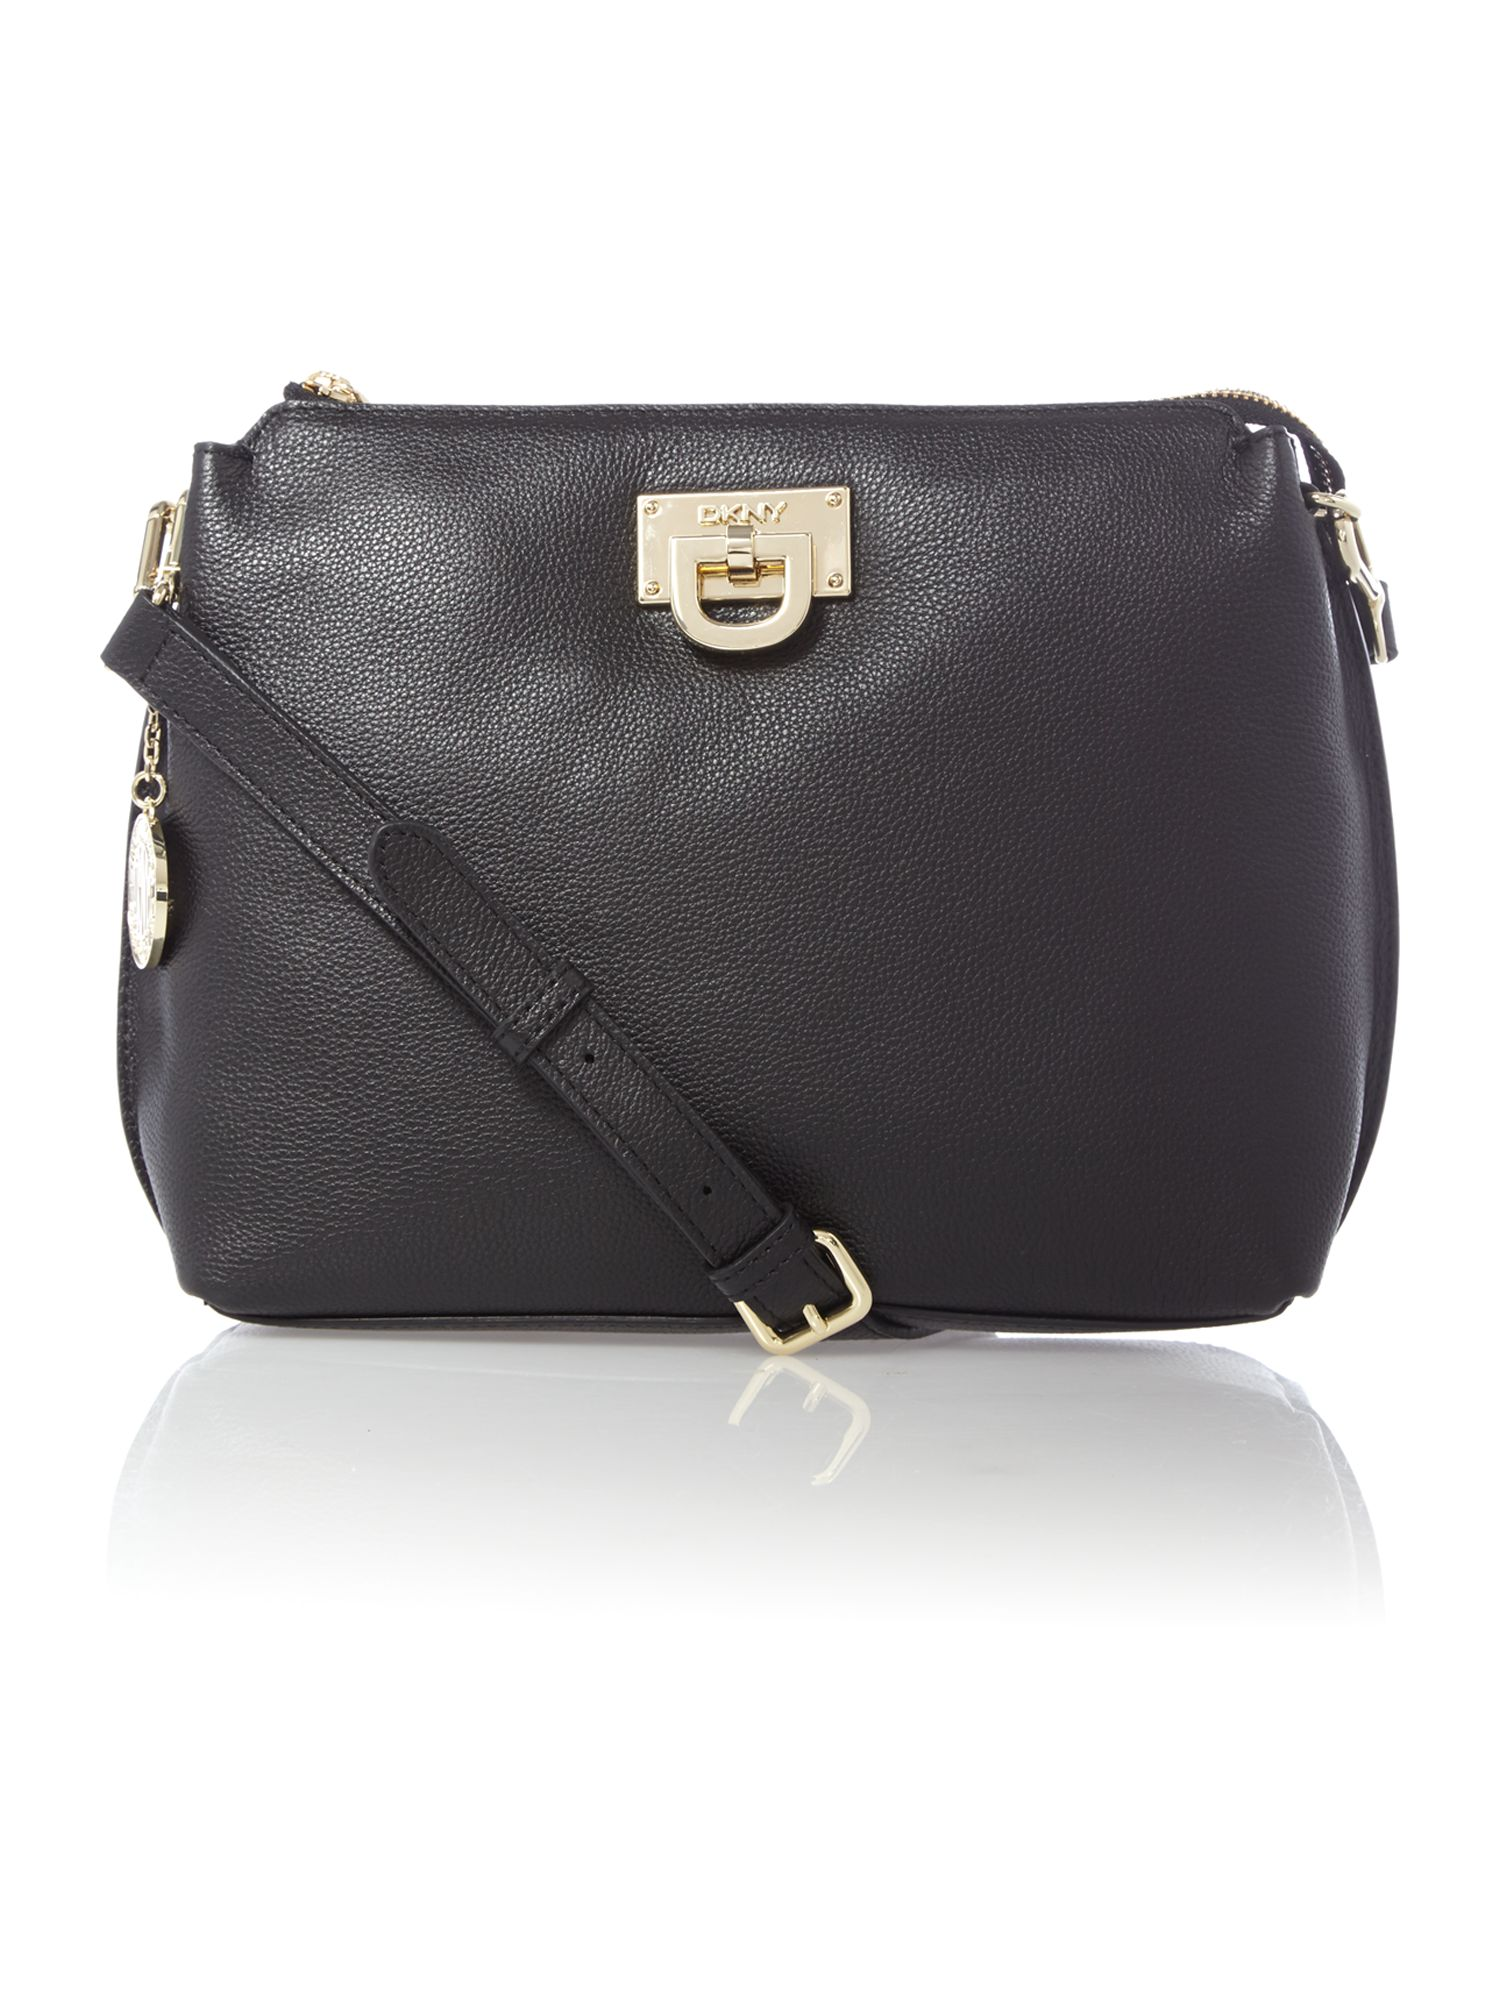 Chelsea black crossbody